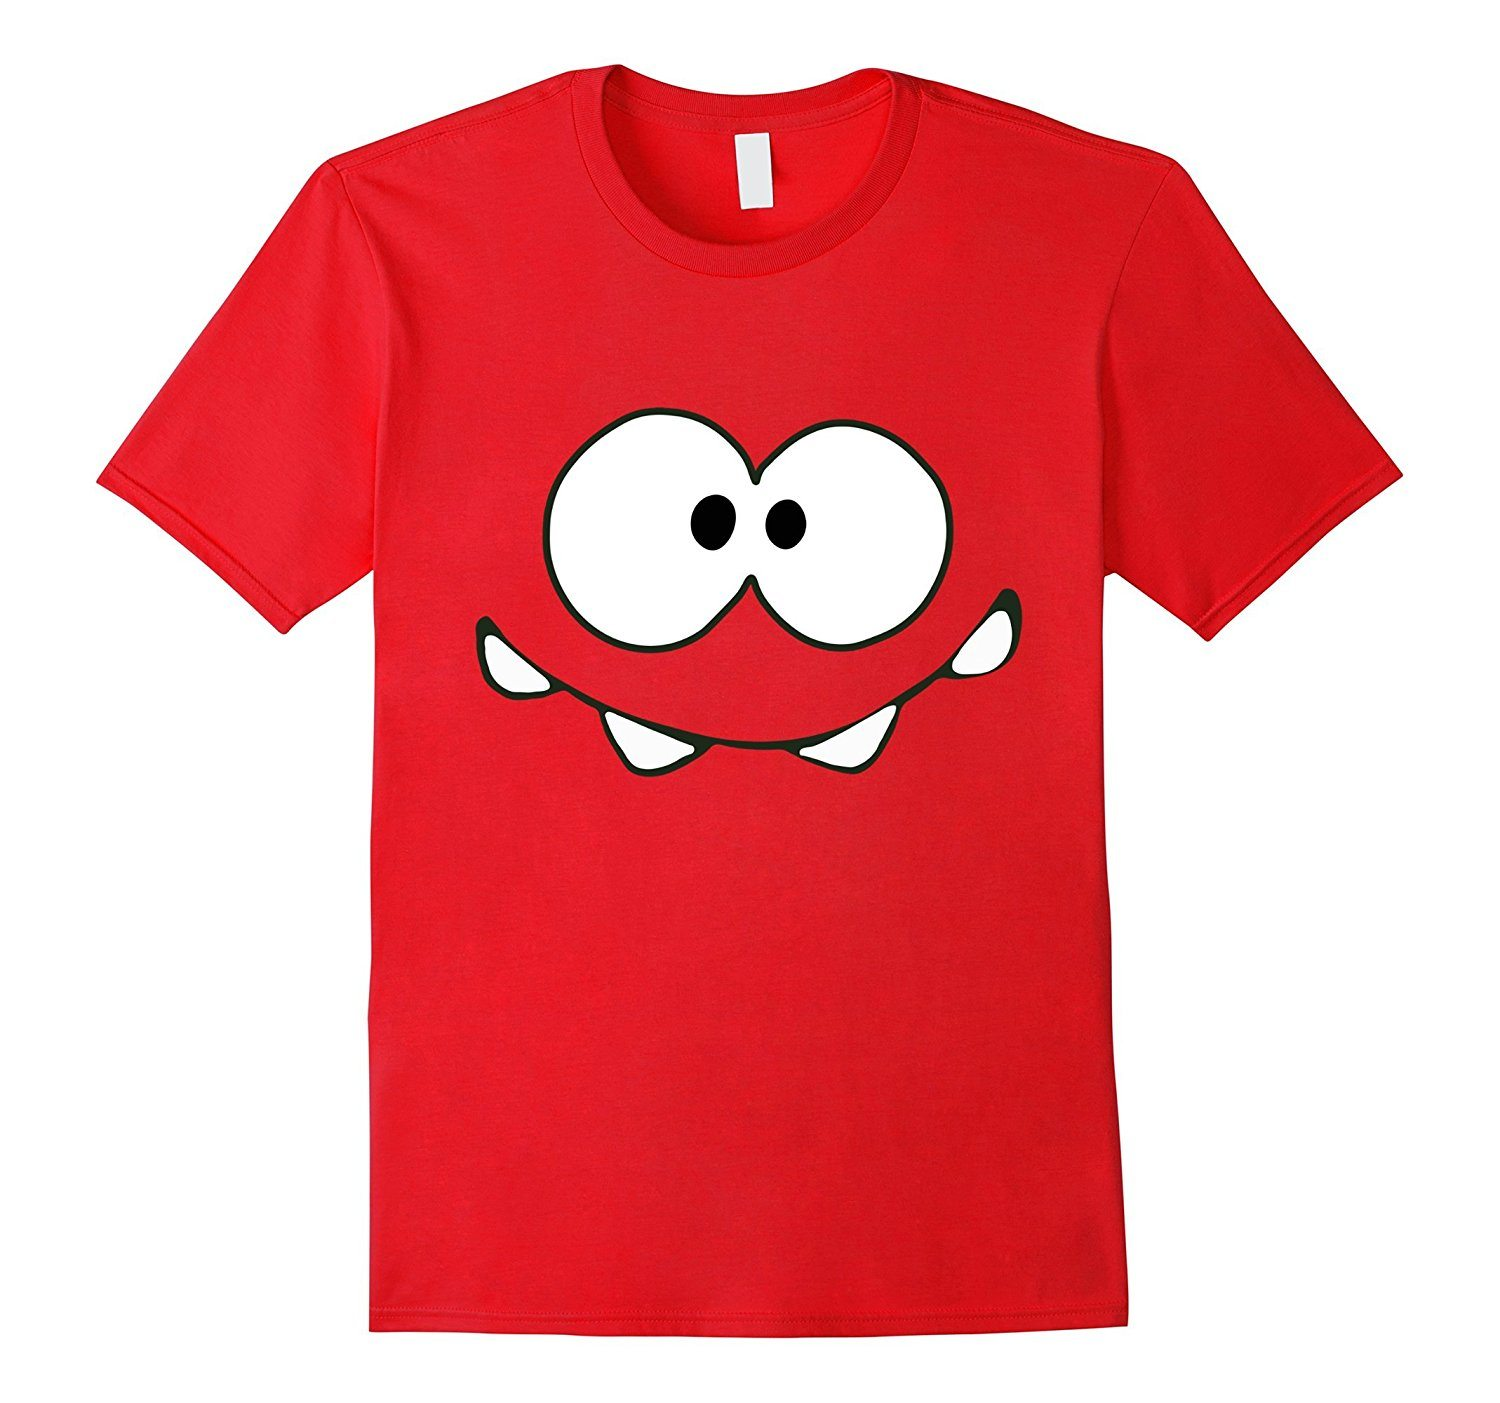 Cool Happy Monster Face T-shirt Cute Smily Face Kids Tshirt